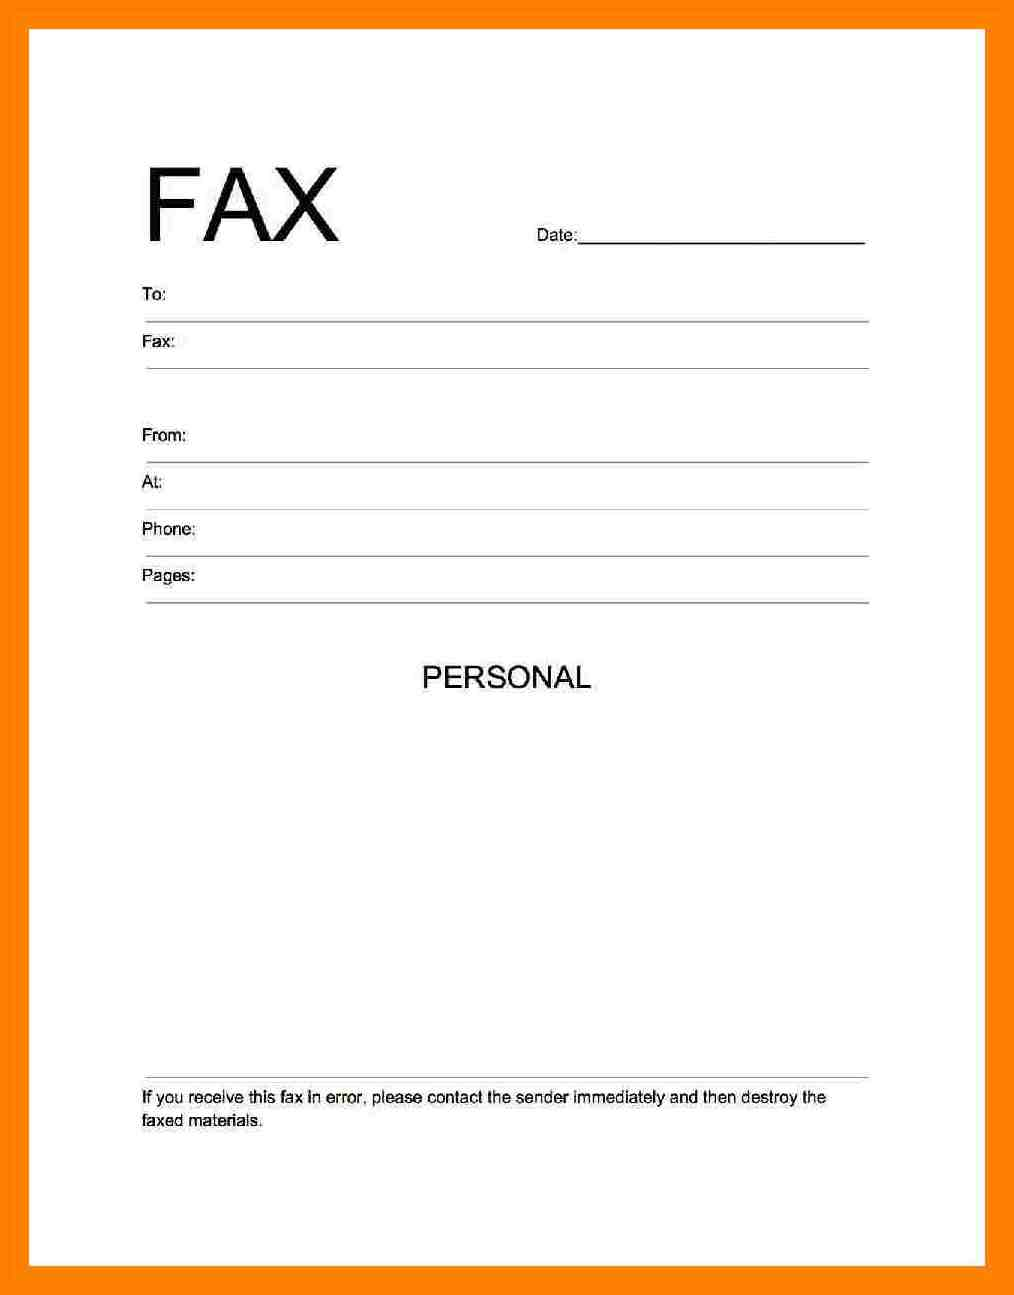 PDF Fax Cover Sheet